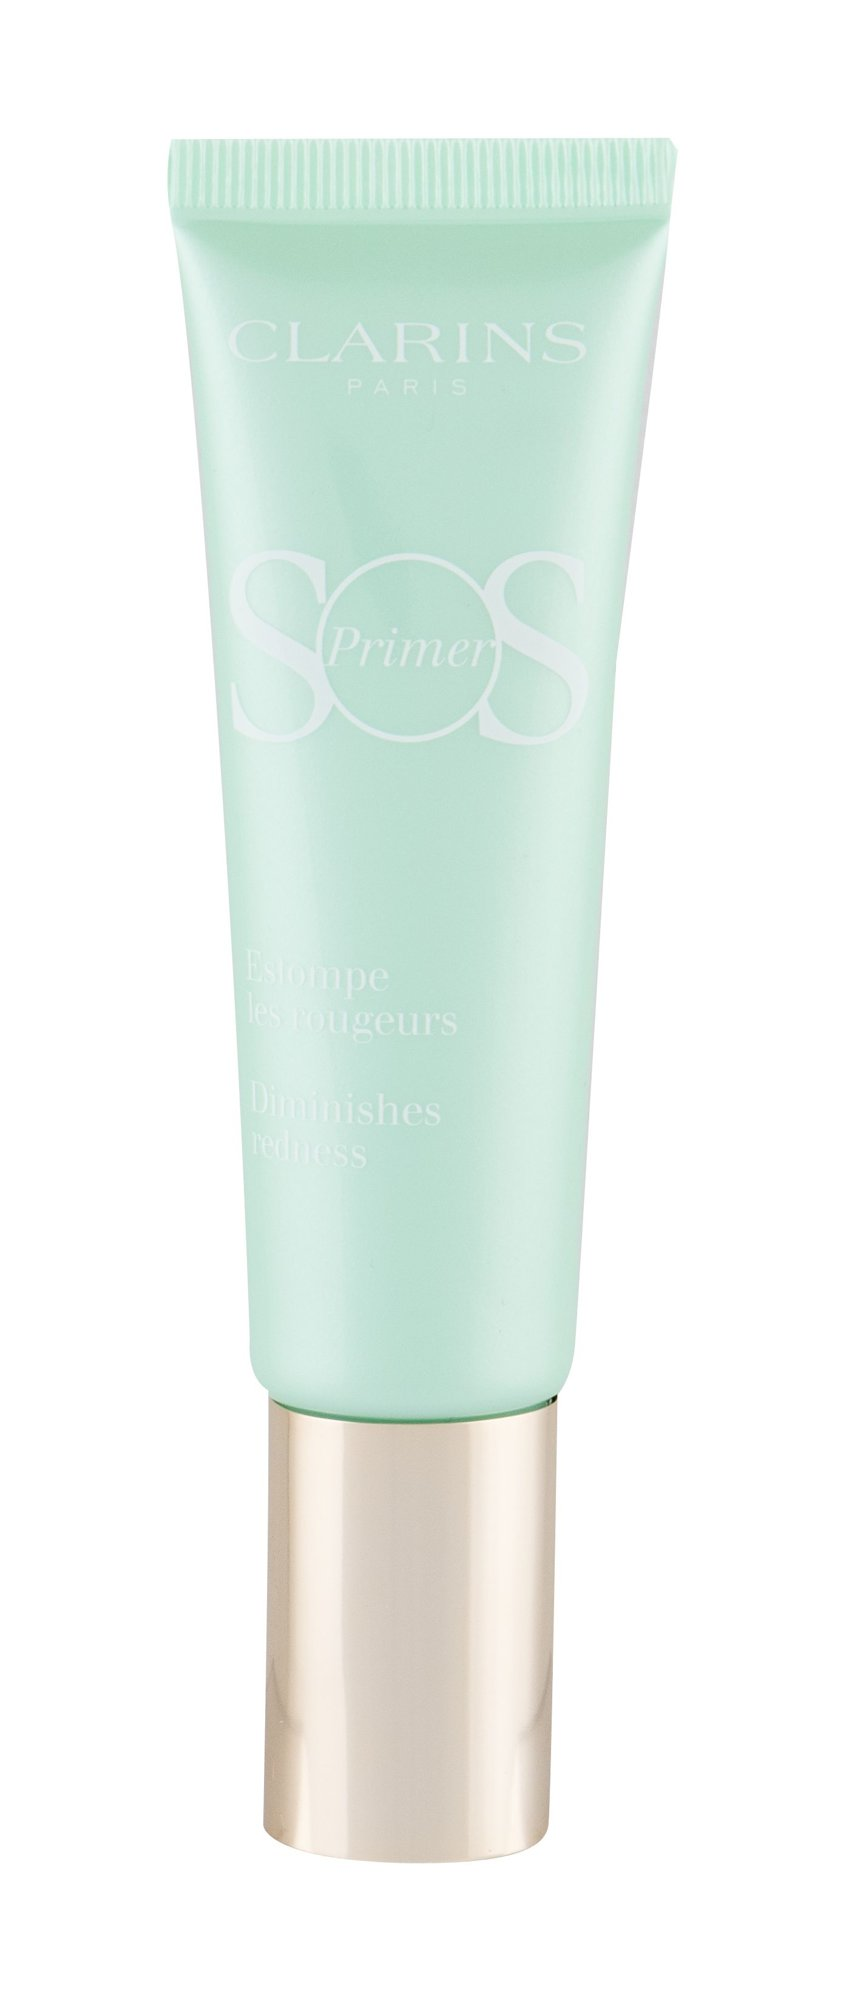 Clarins SOS Makeup Primer 30ml 04 Green